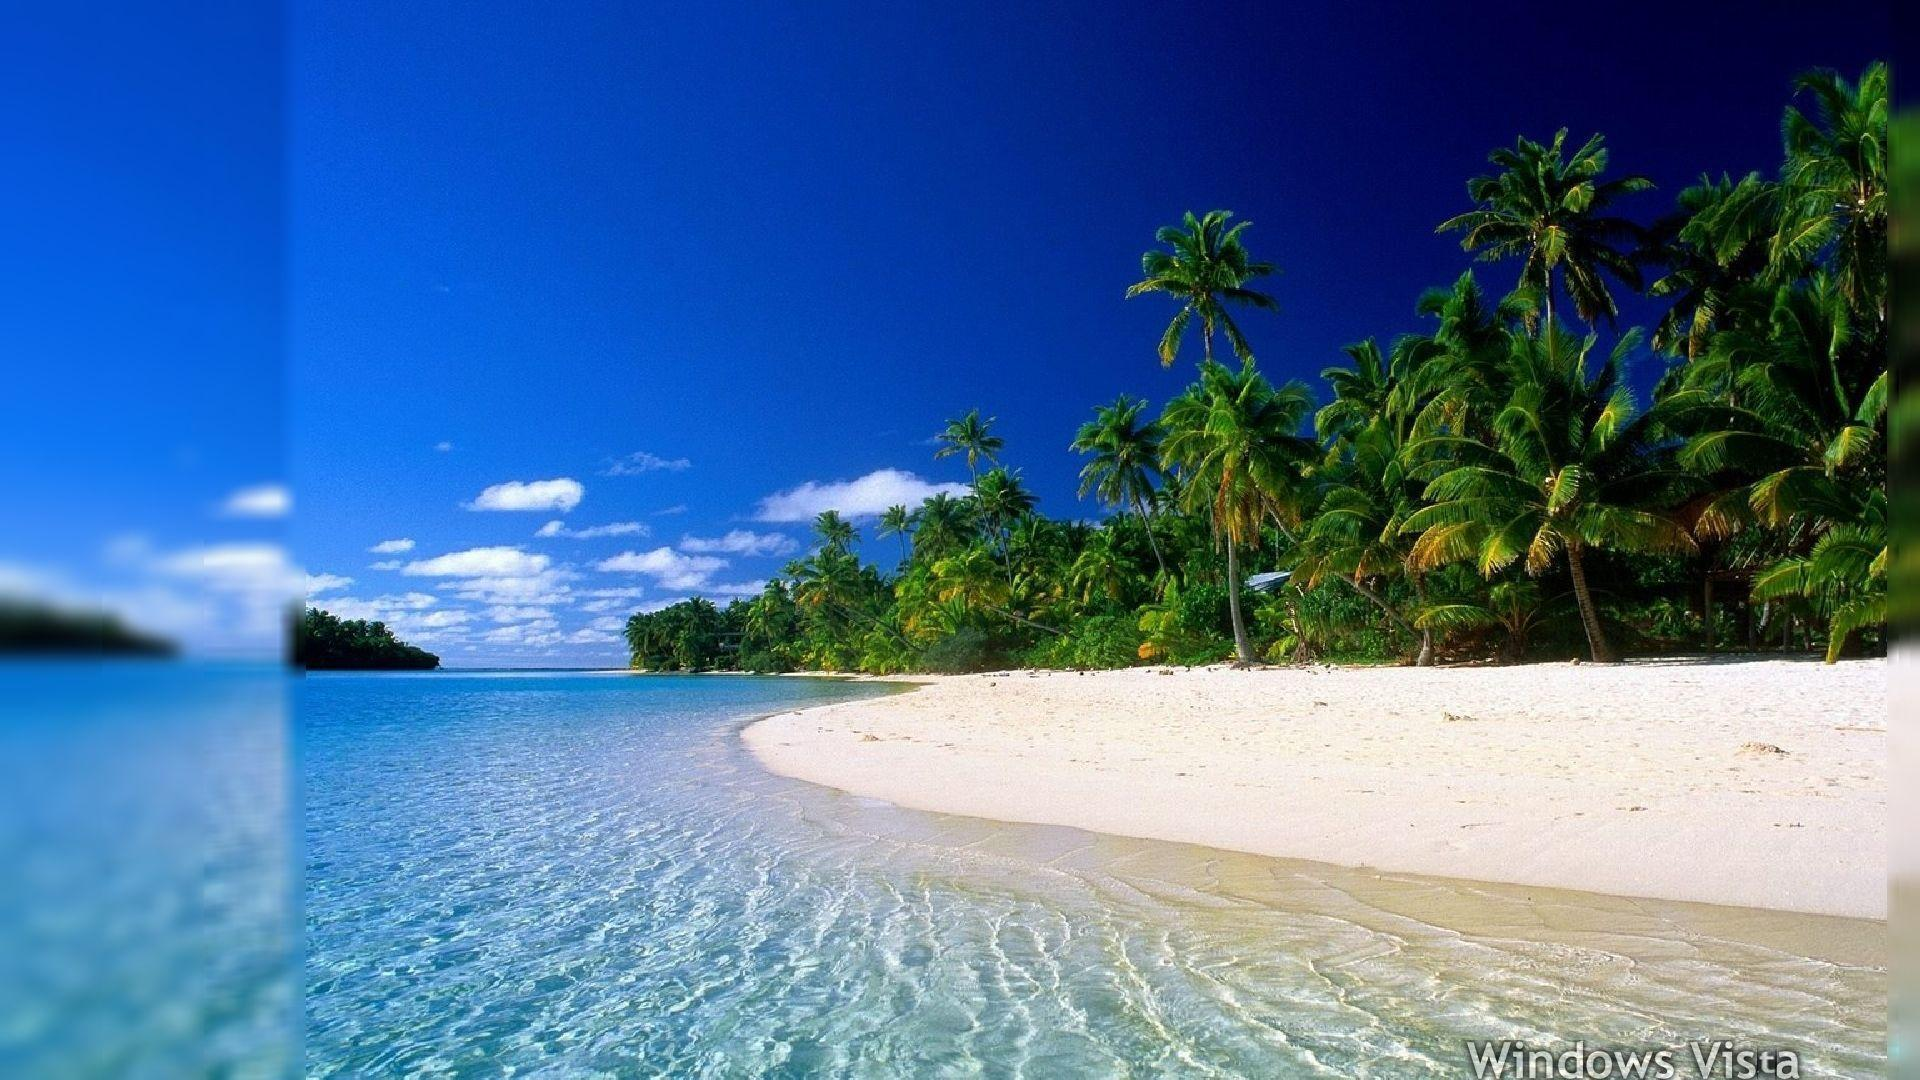 Hd Tropical Island Beach Paradise Wallpapers And Backgrounds: Wallpapers For Computer Desktops